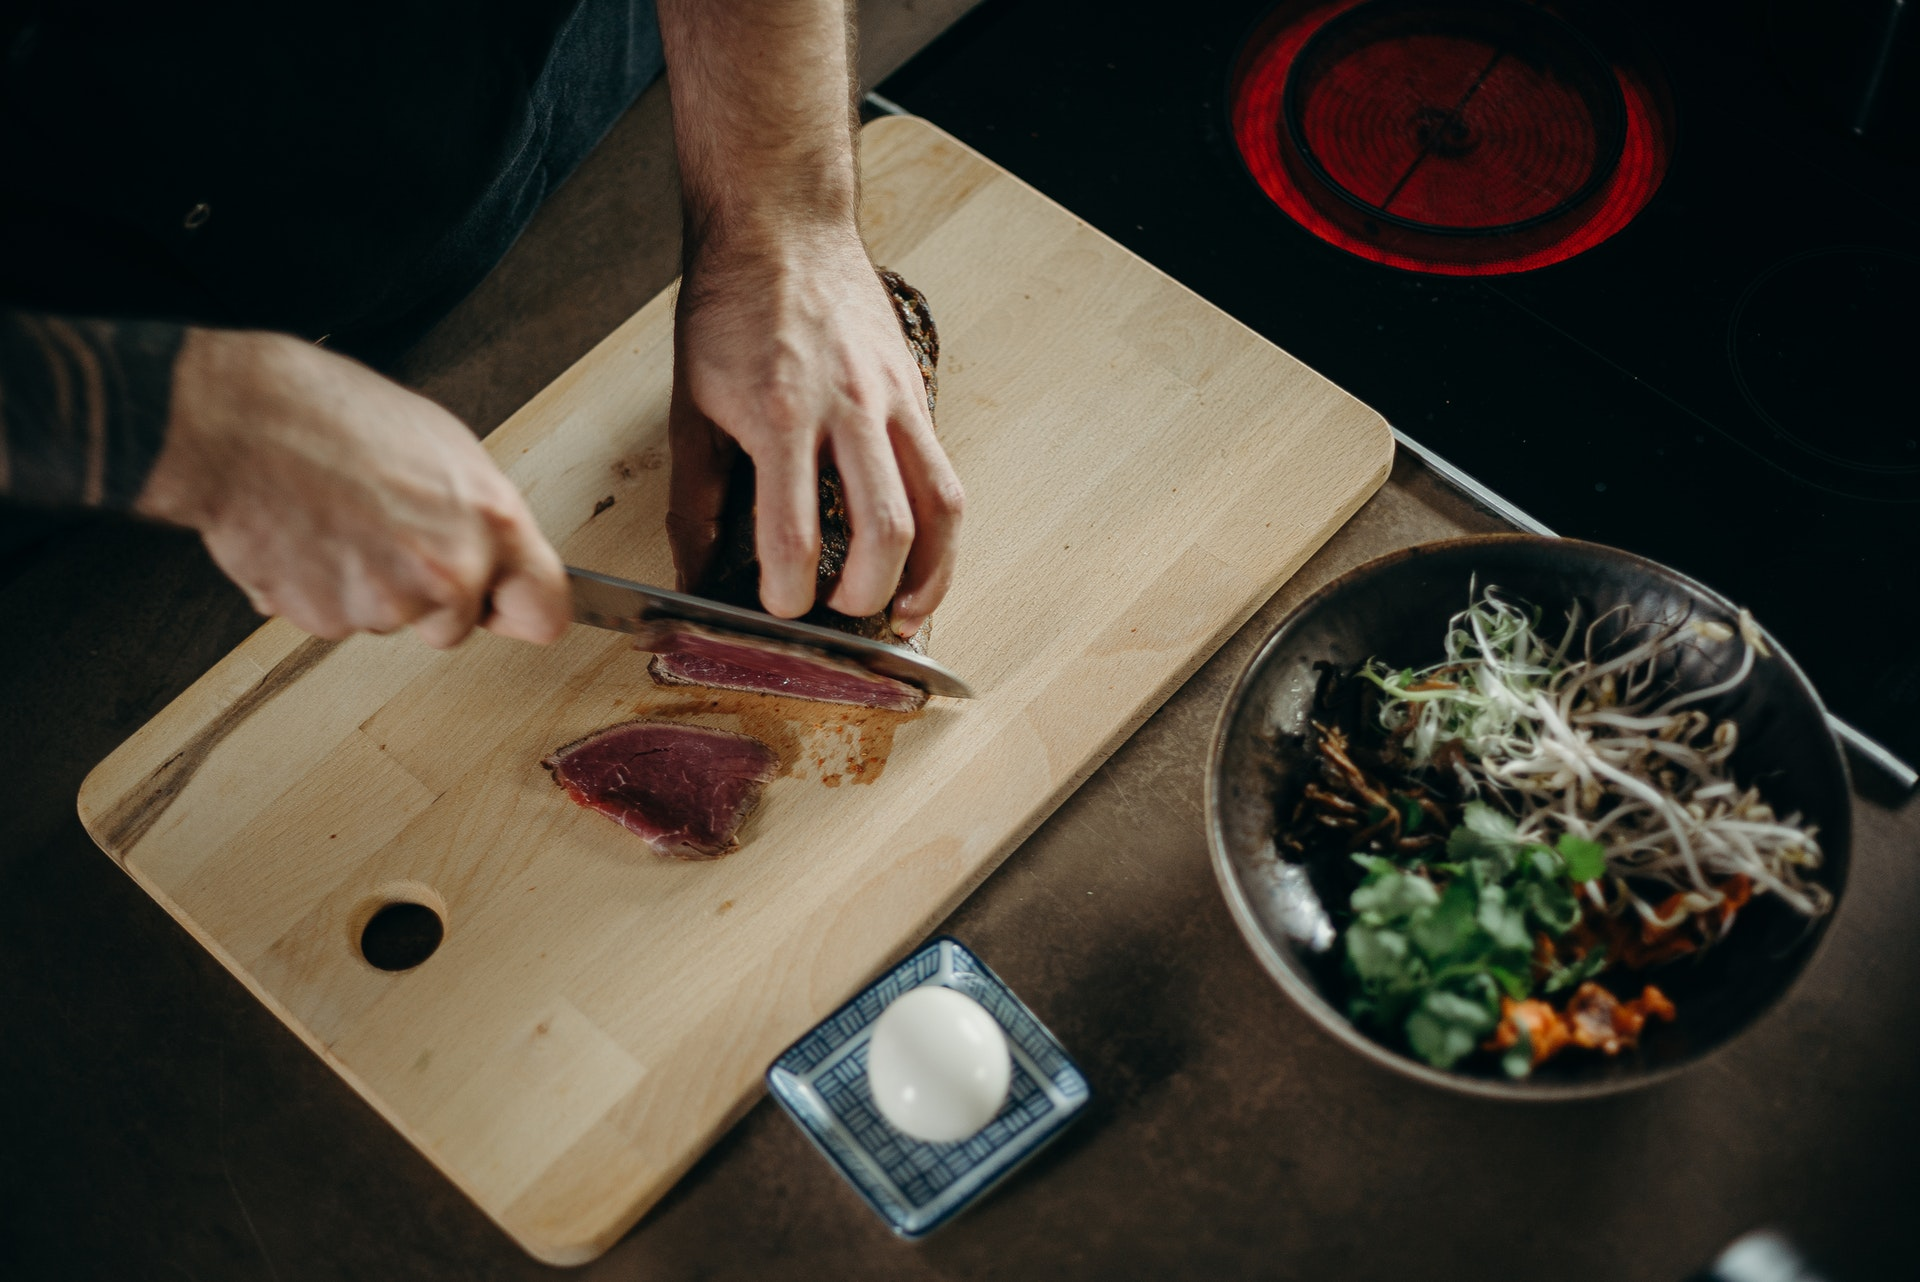 https://www.pexels.com/photo/person-slicing-meat-on-wooden-chopping-board-3298633/